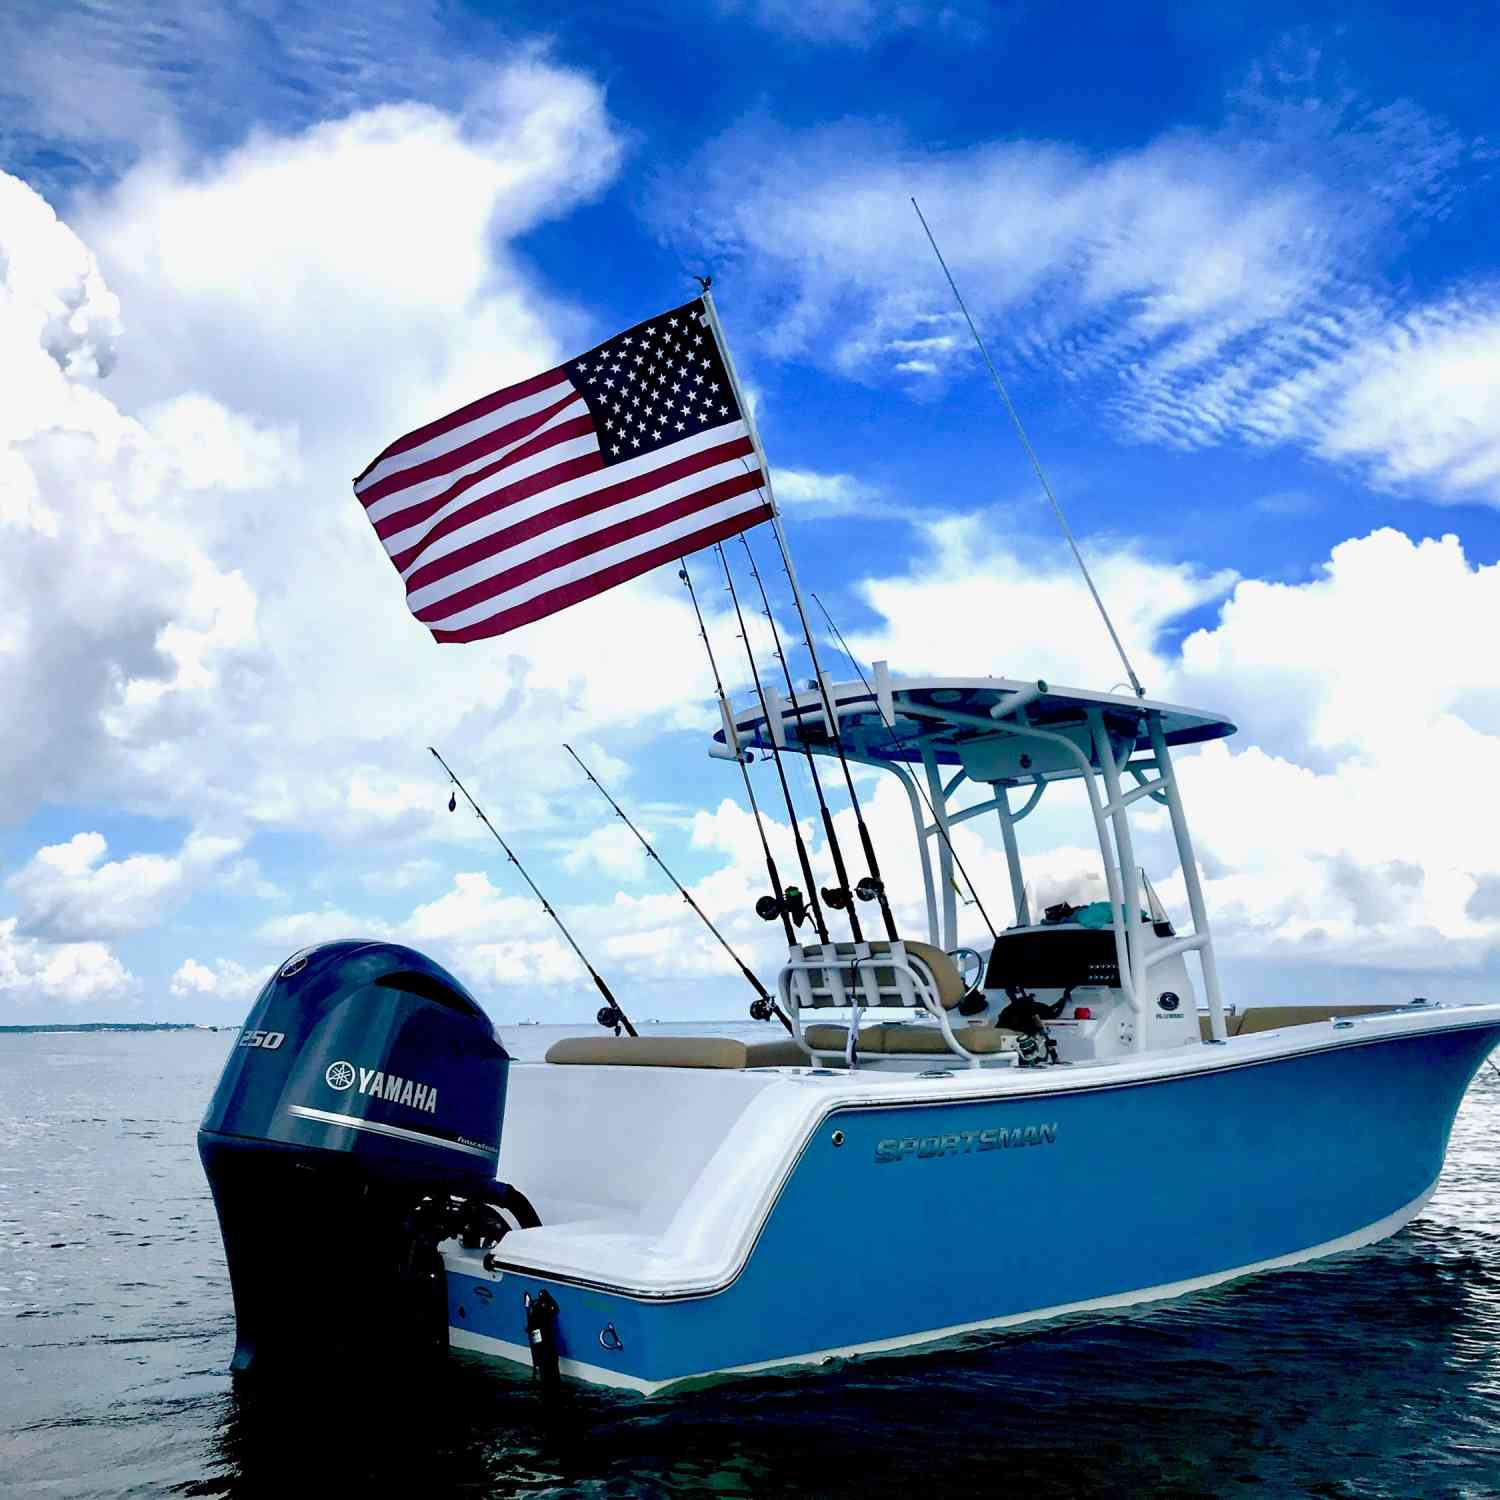 Title: Ol Glory Flying - On board their Sportsman Open 232 Center Console - Location: Baldwin, Al. Participating in the Photo Contest #SportsmanJuly2018